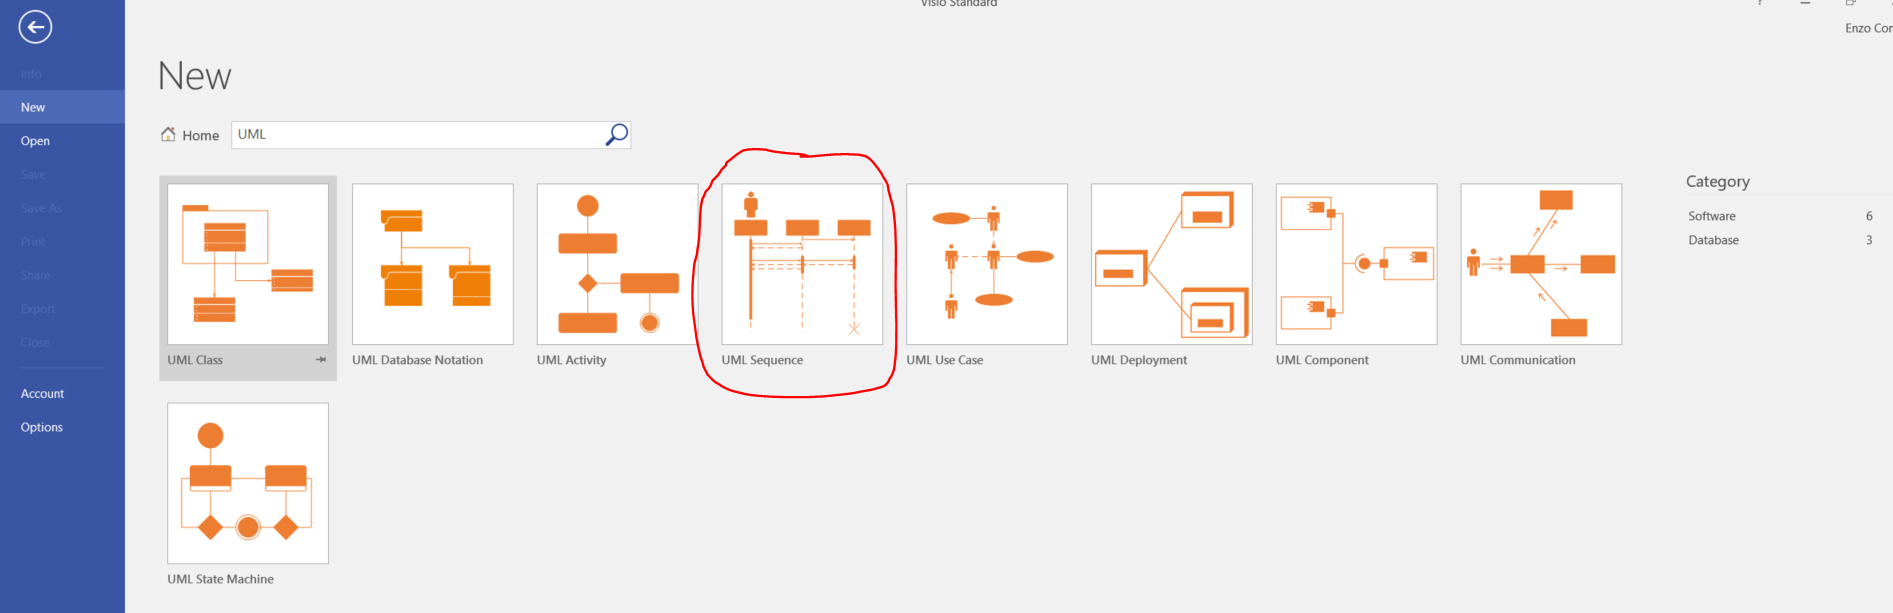 searching for uml diagram templates in visio 2016 standard